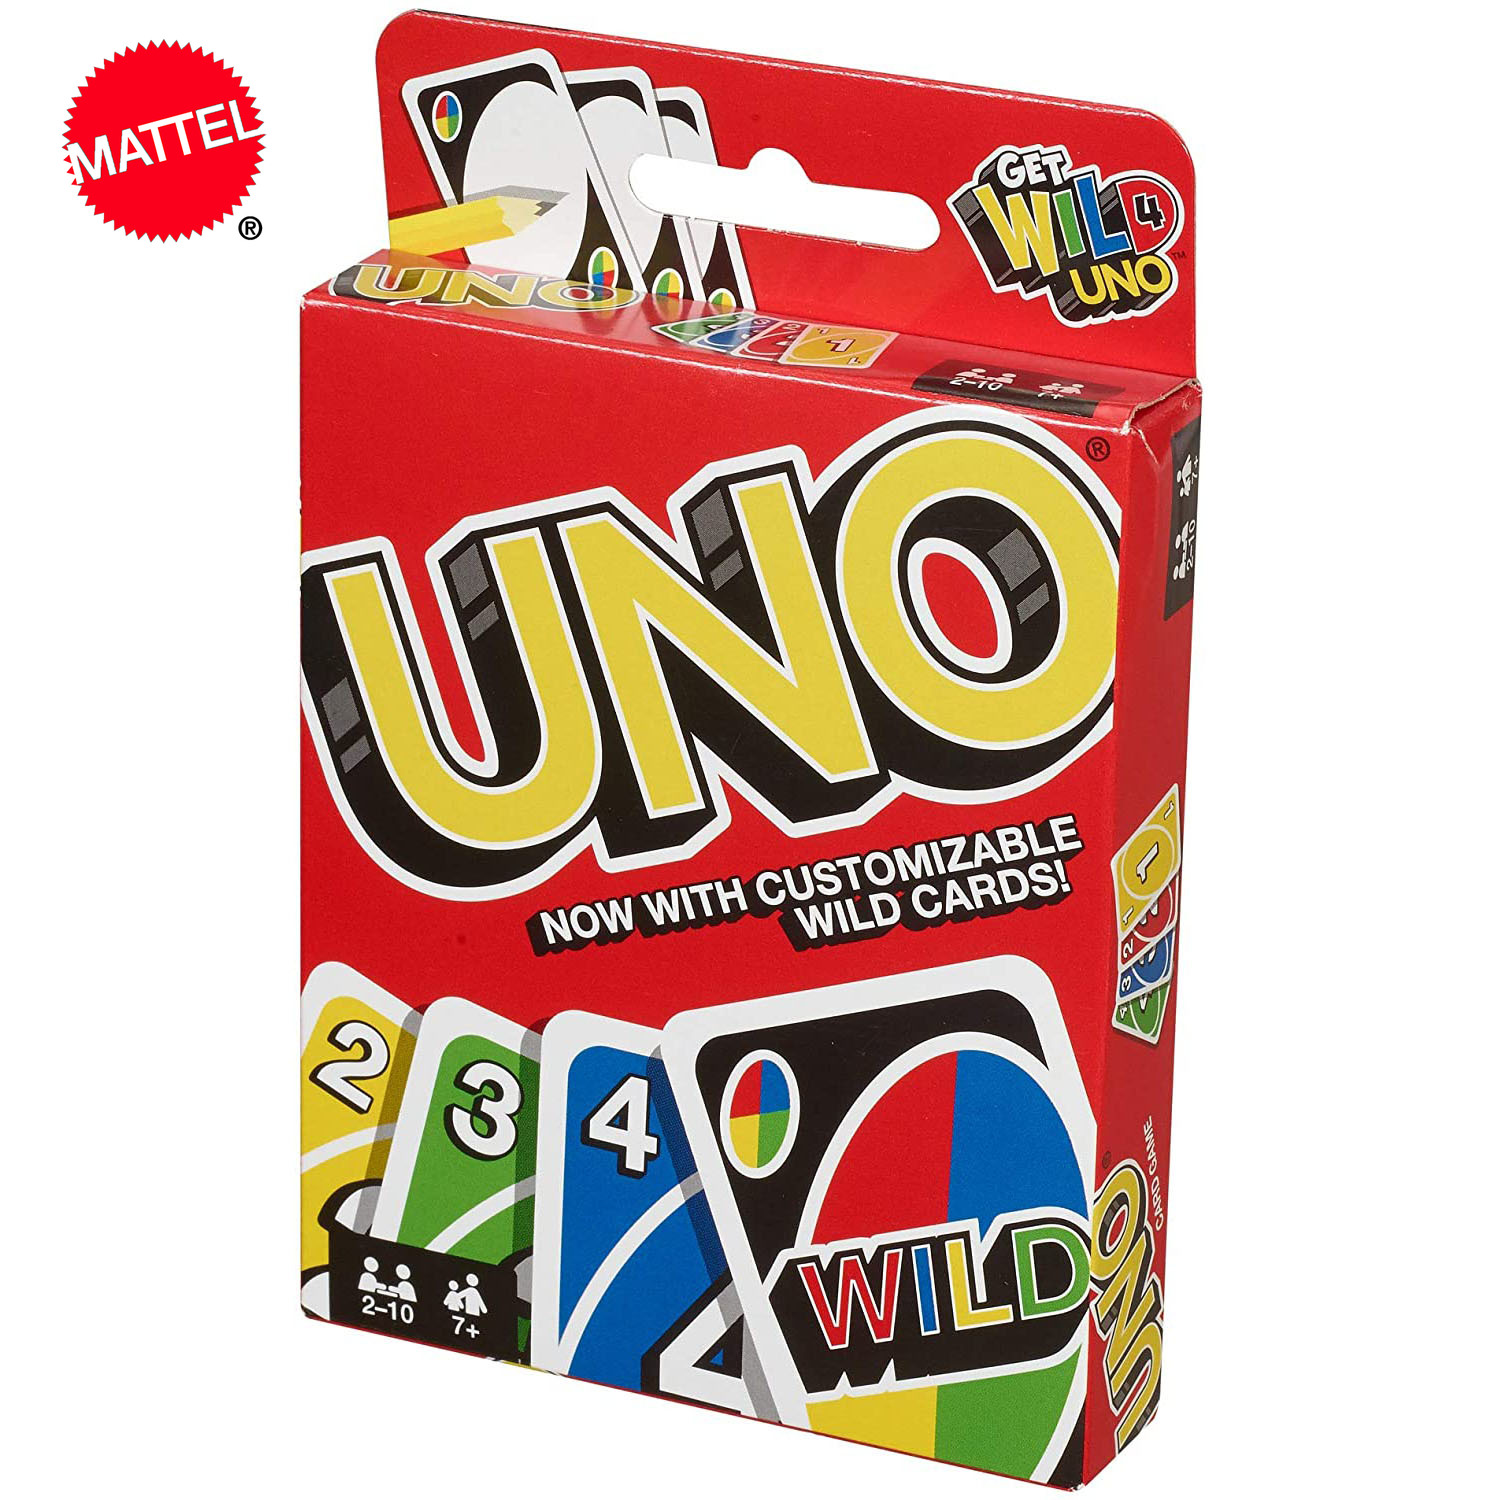 Topsale Puzzle Games Mattel Genuine UNO Family Funny Entertainment Board Game Fun Poker Playing Cards Gift Box